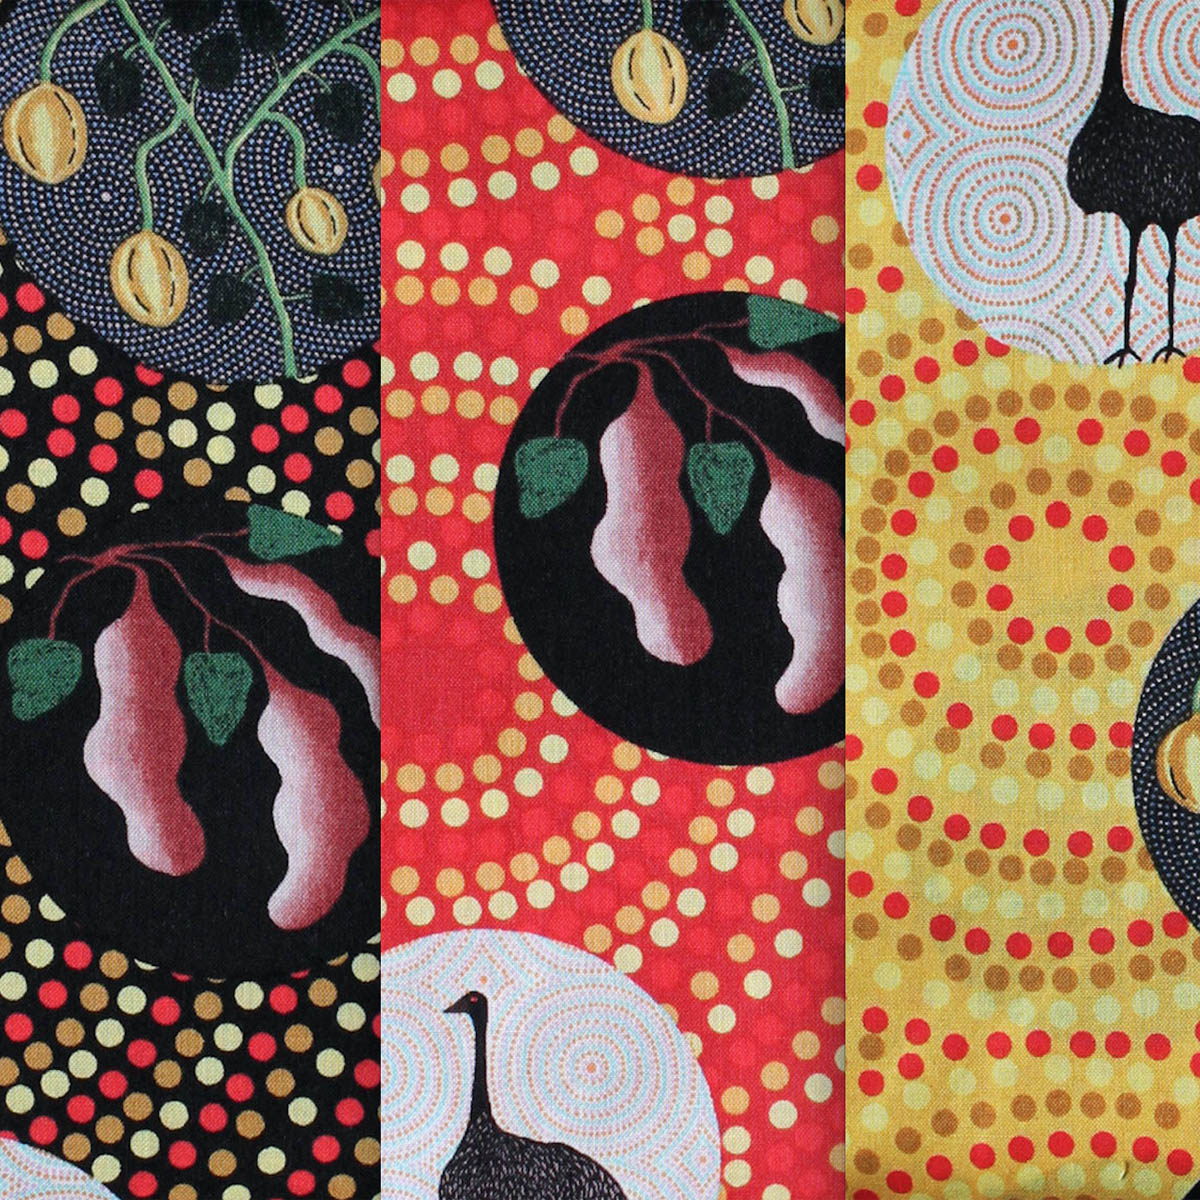 BUSH TUCKER WITH WILD FIG YELLOW by Aboriginal Artist NATASHA STUART